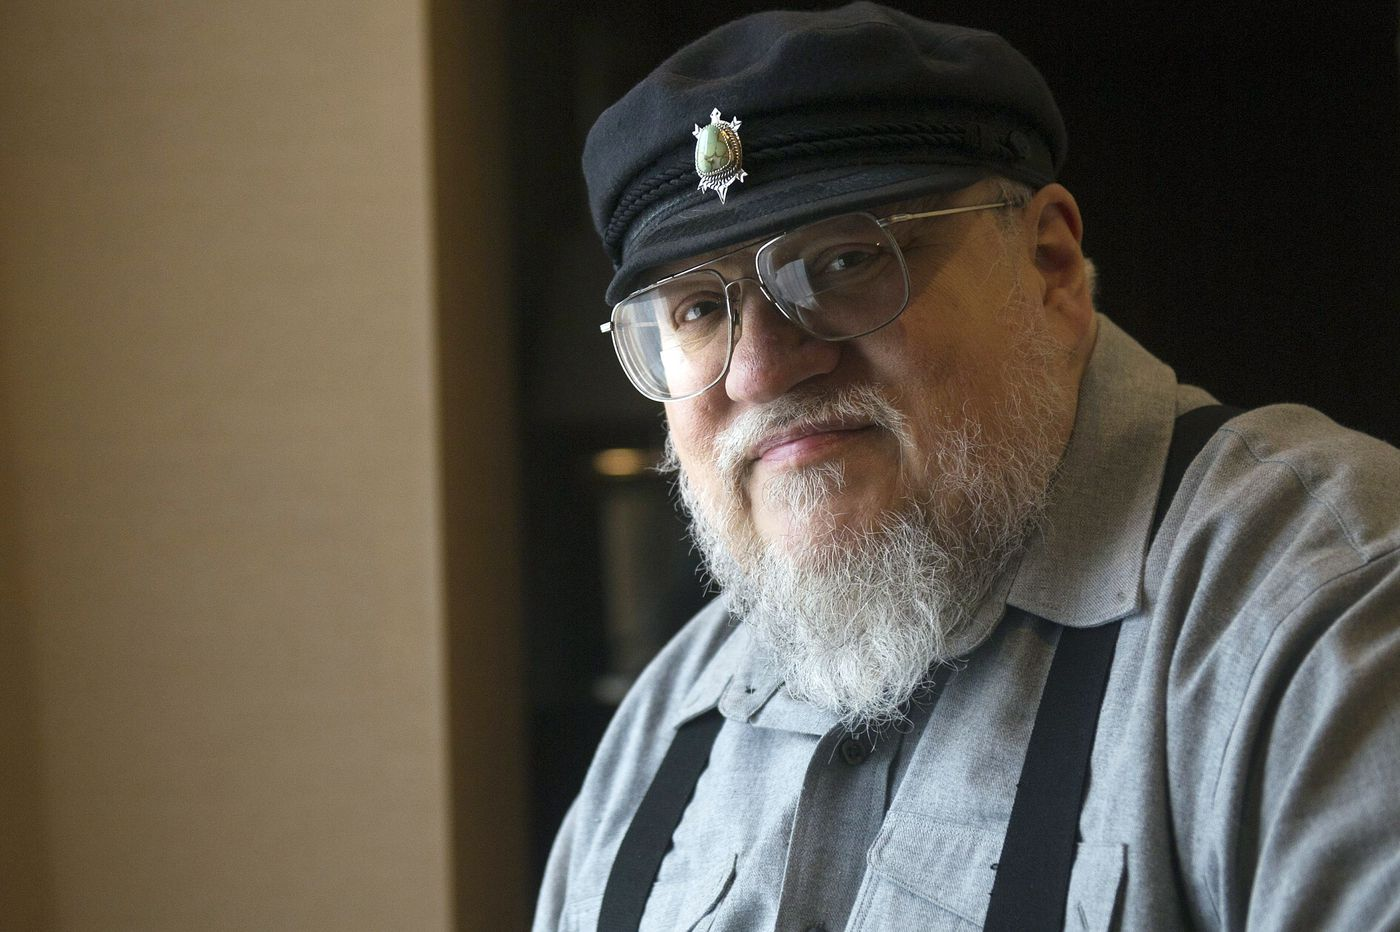 'Game of Thrones': Author George R.R. Martin teases 'real' ending